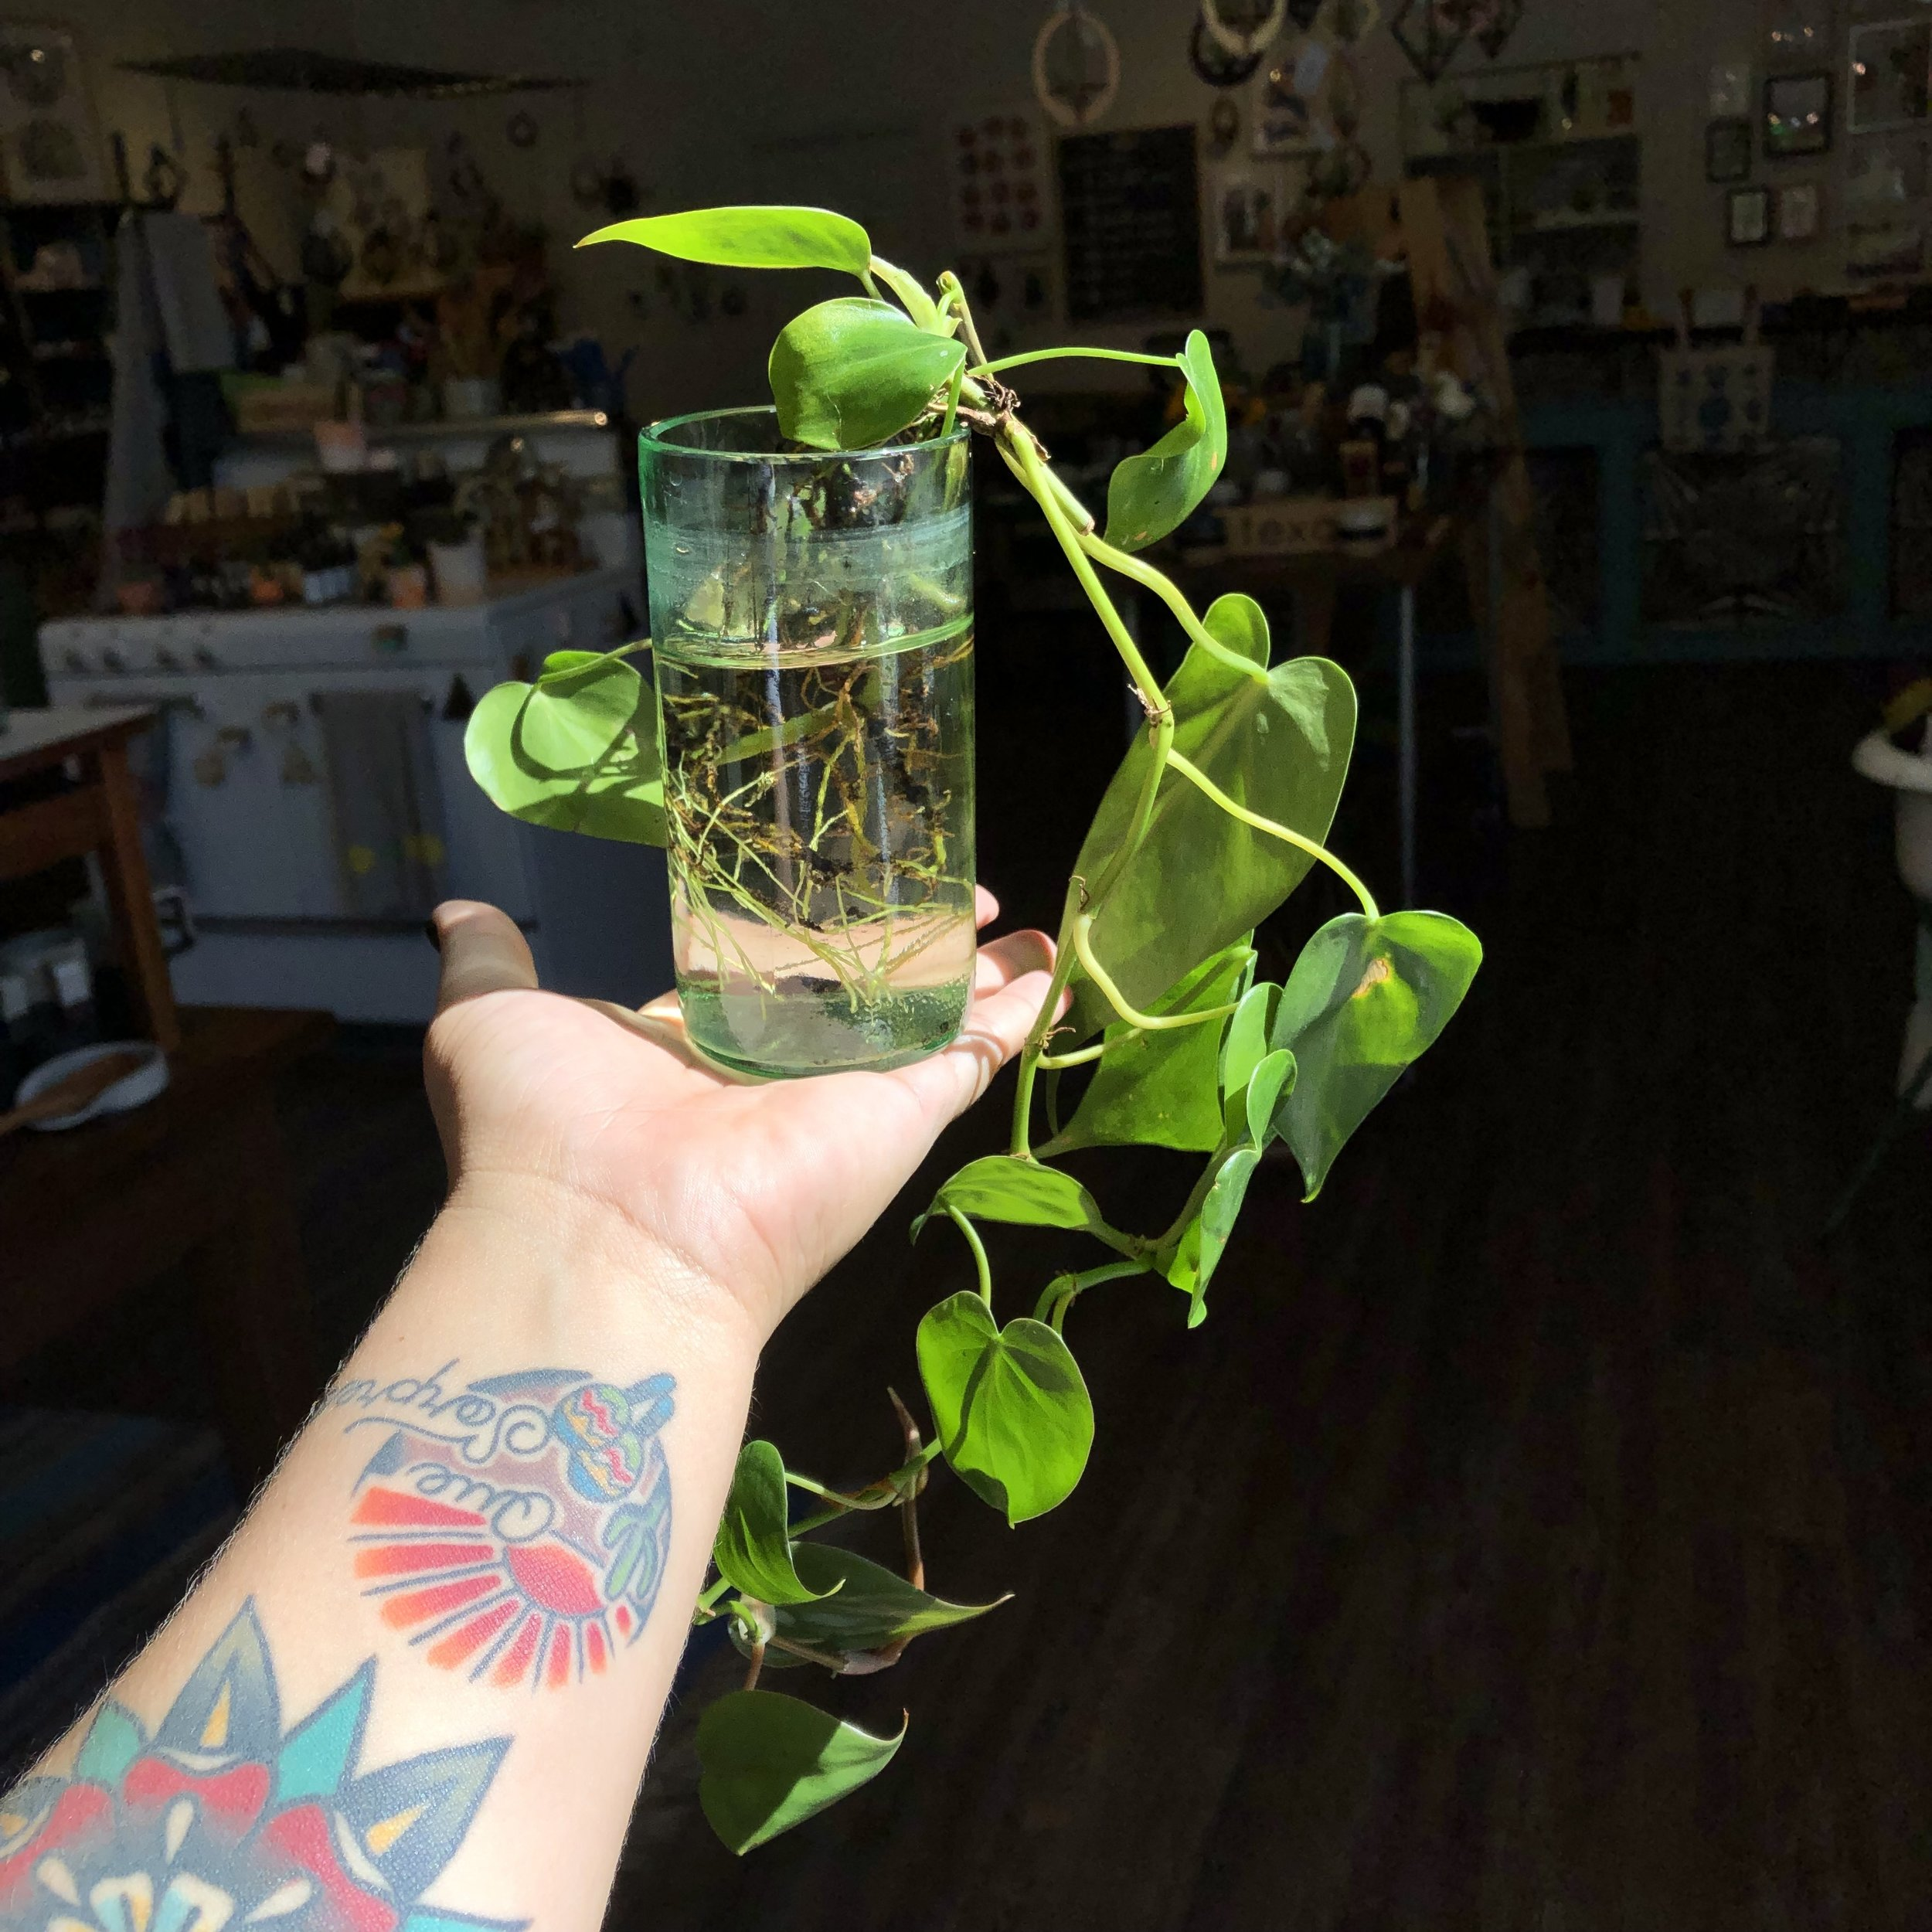 The first clipping we added to our community Pothos